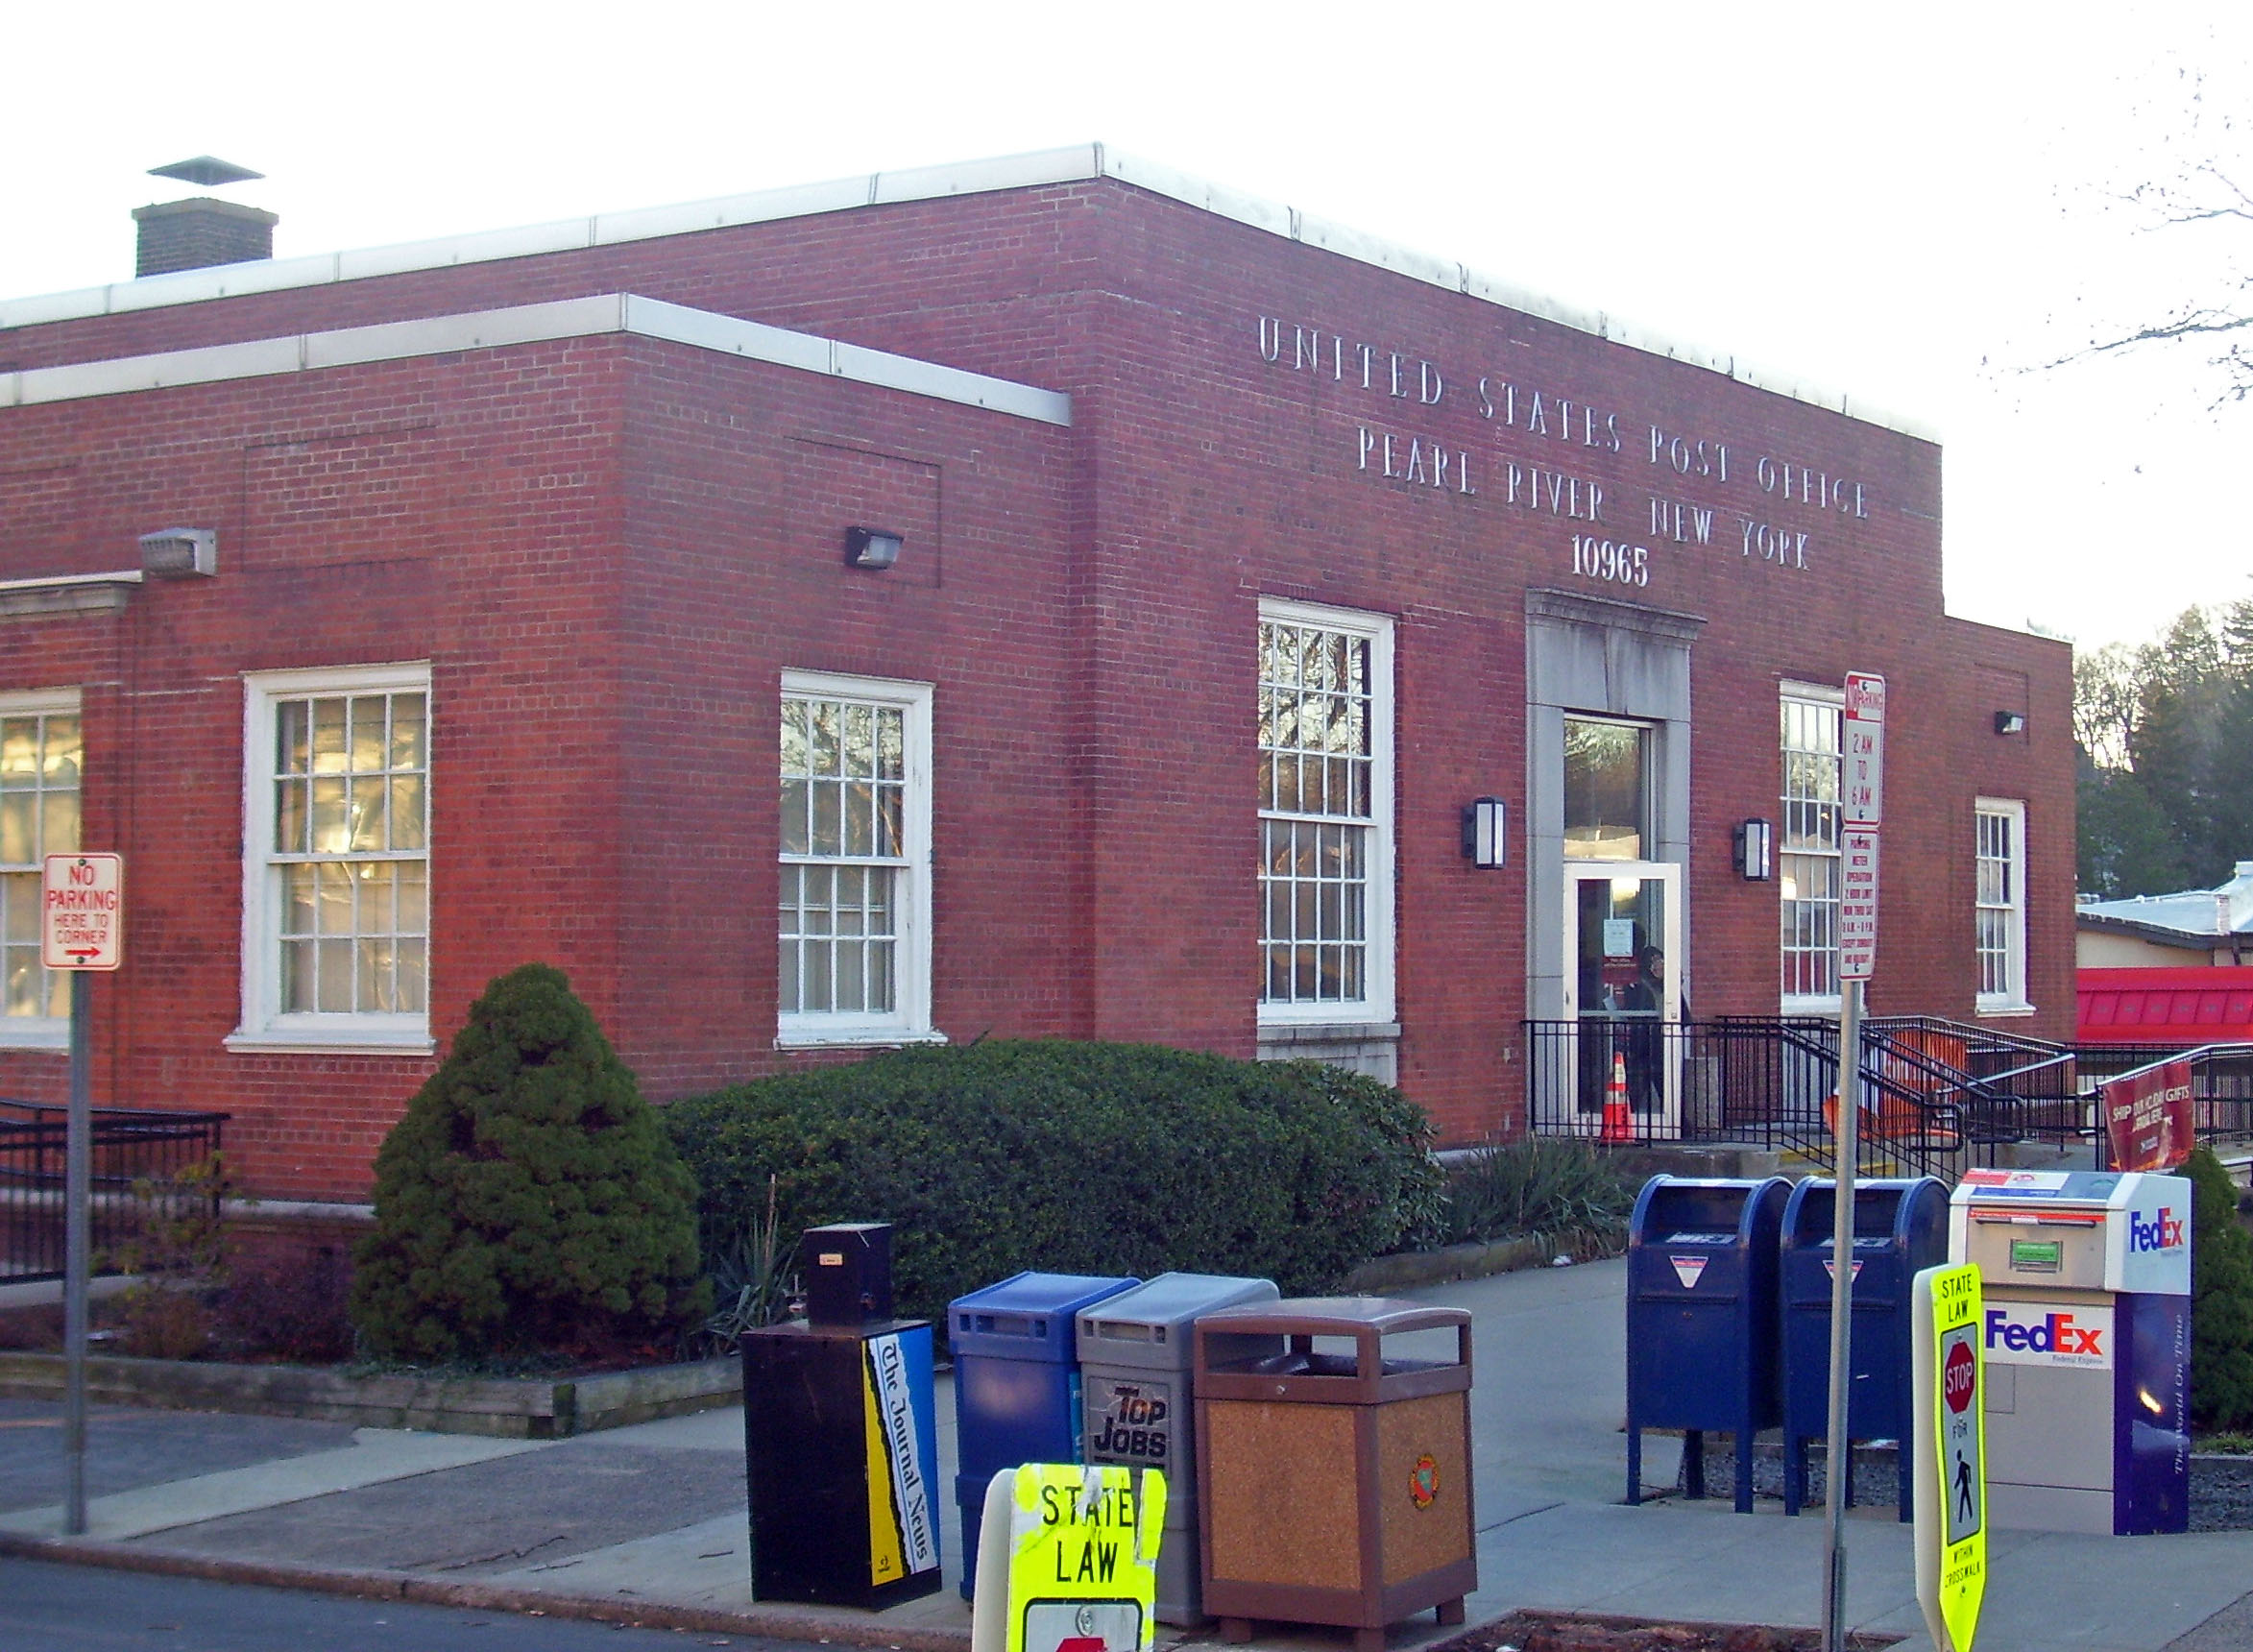 united states post office (pearl river new york)  wikipedia - a brick building with a large main block and two smaller wings seen fromits